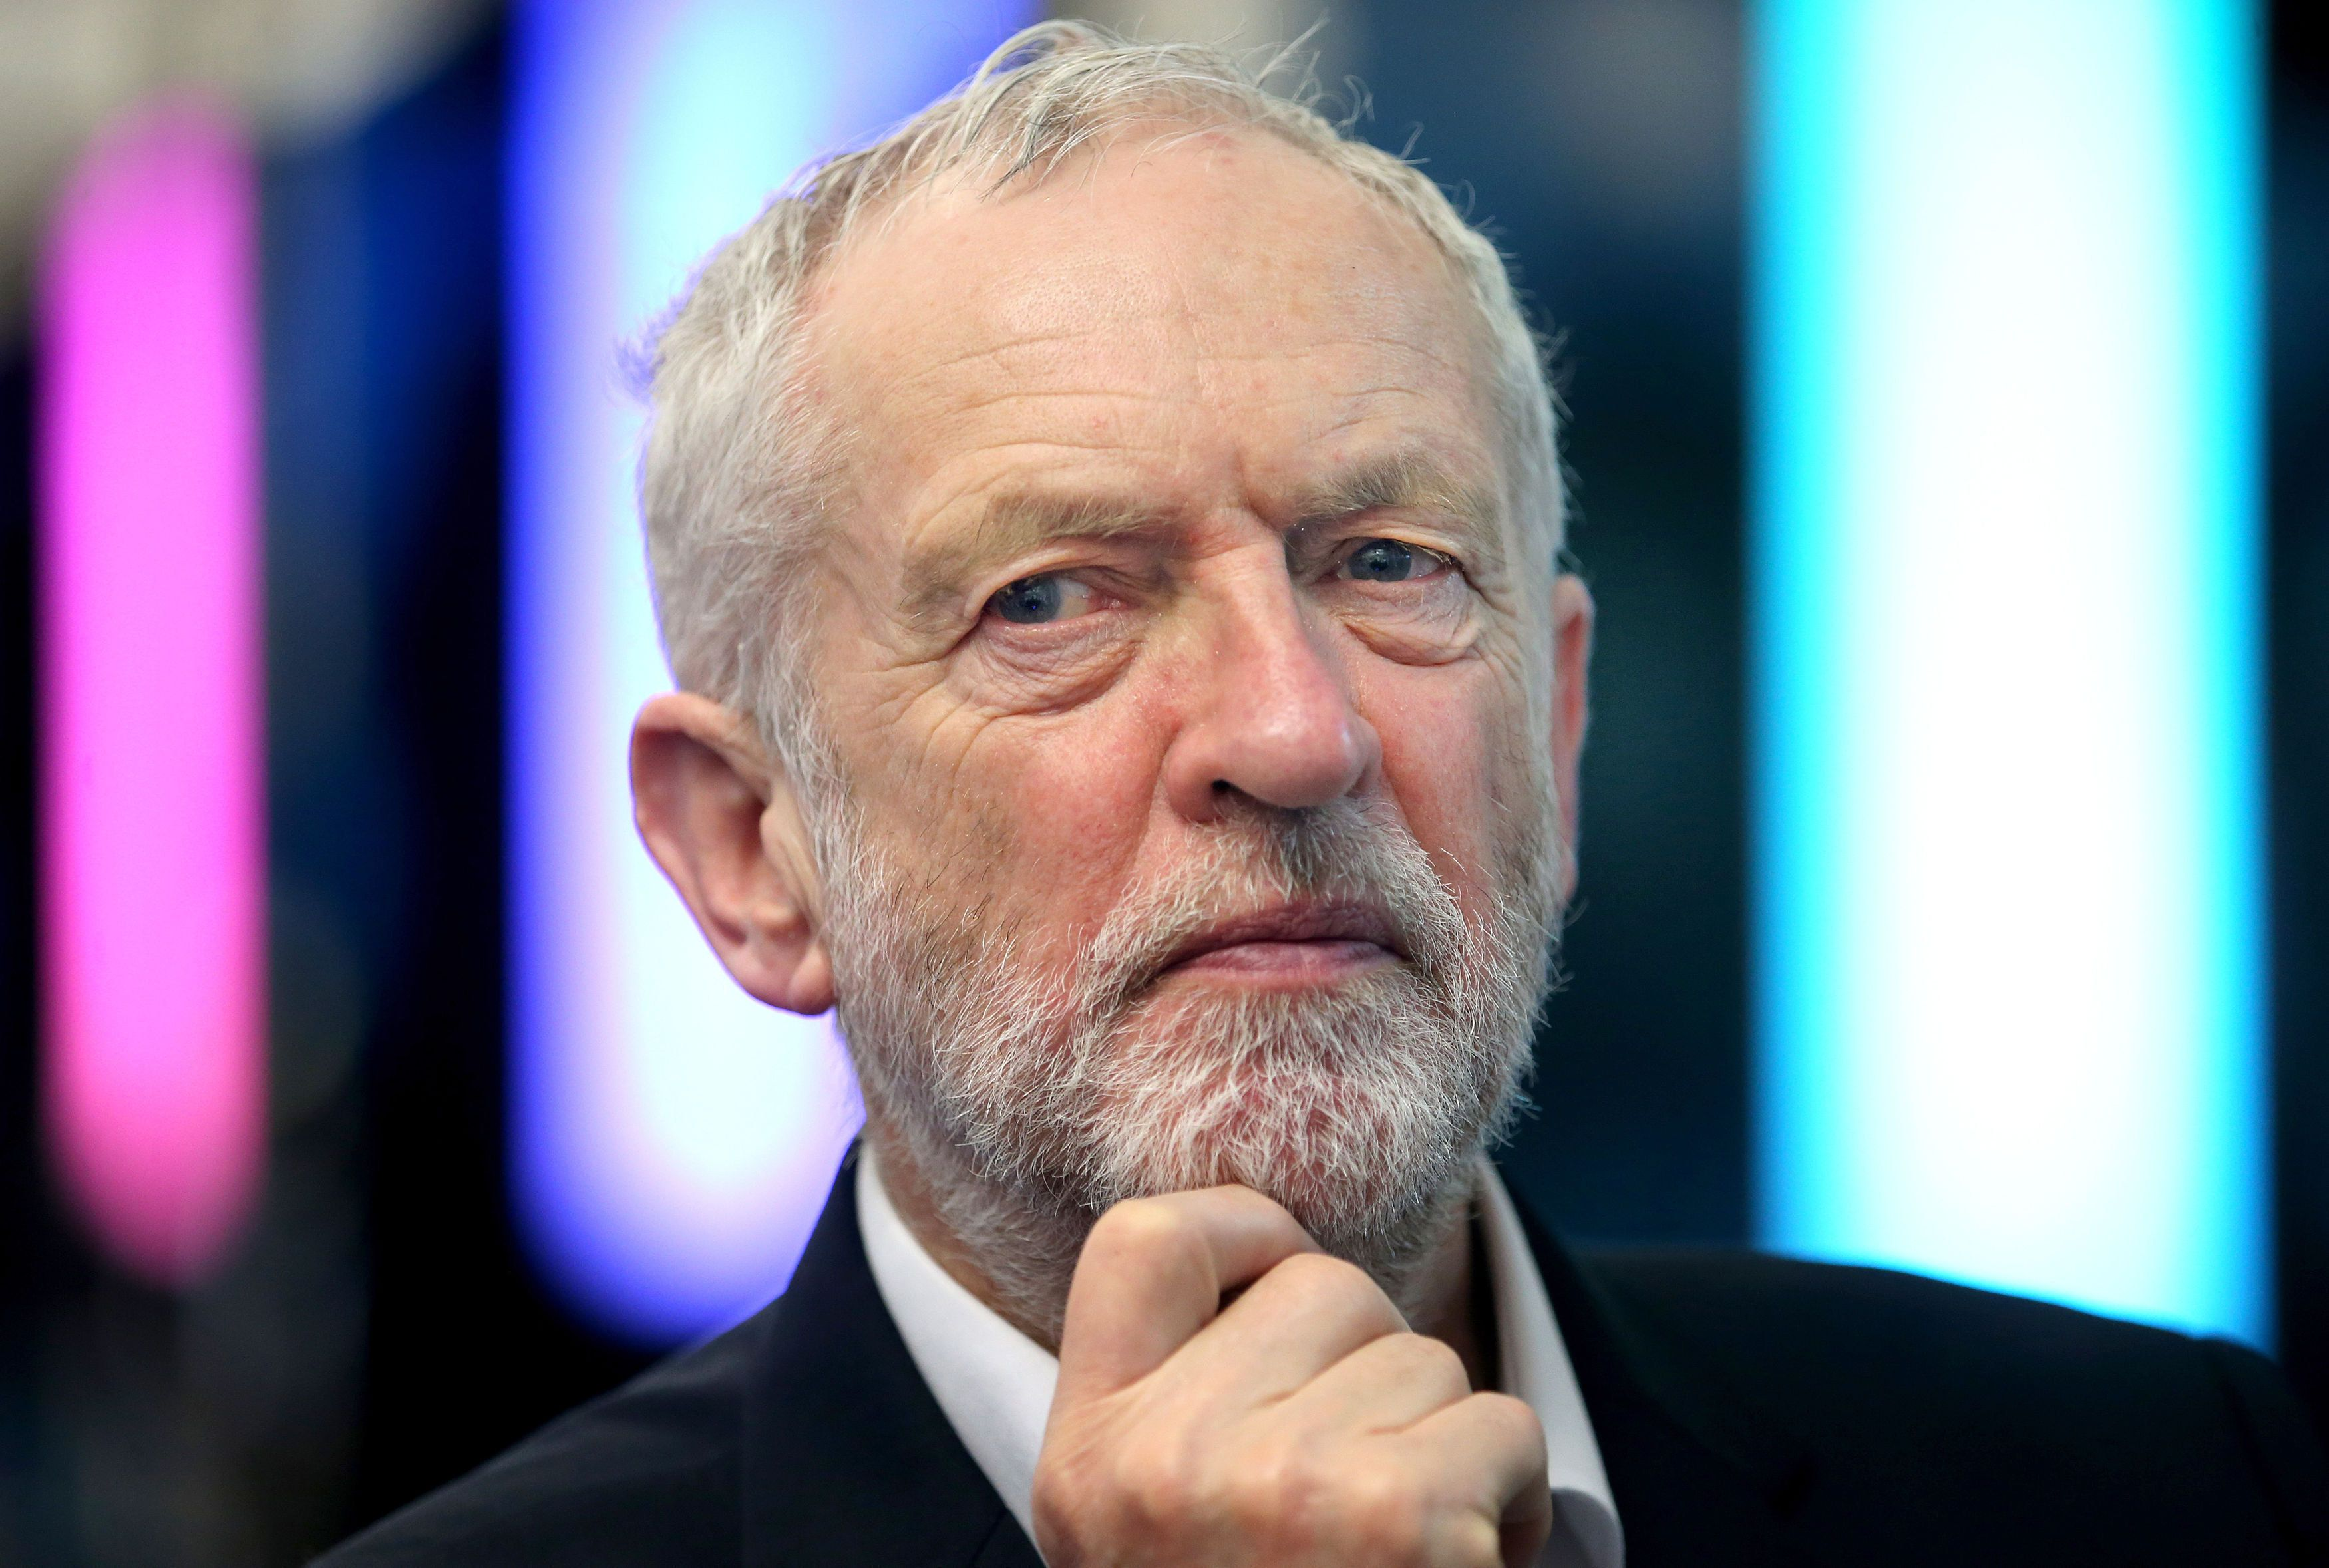 Most Labour Members Think Anti-Semitism Claims Are Being Exaggerated To Damage Jeremy